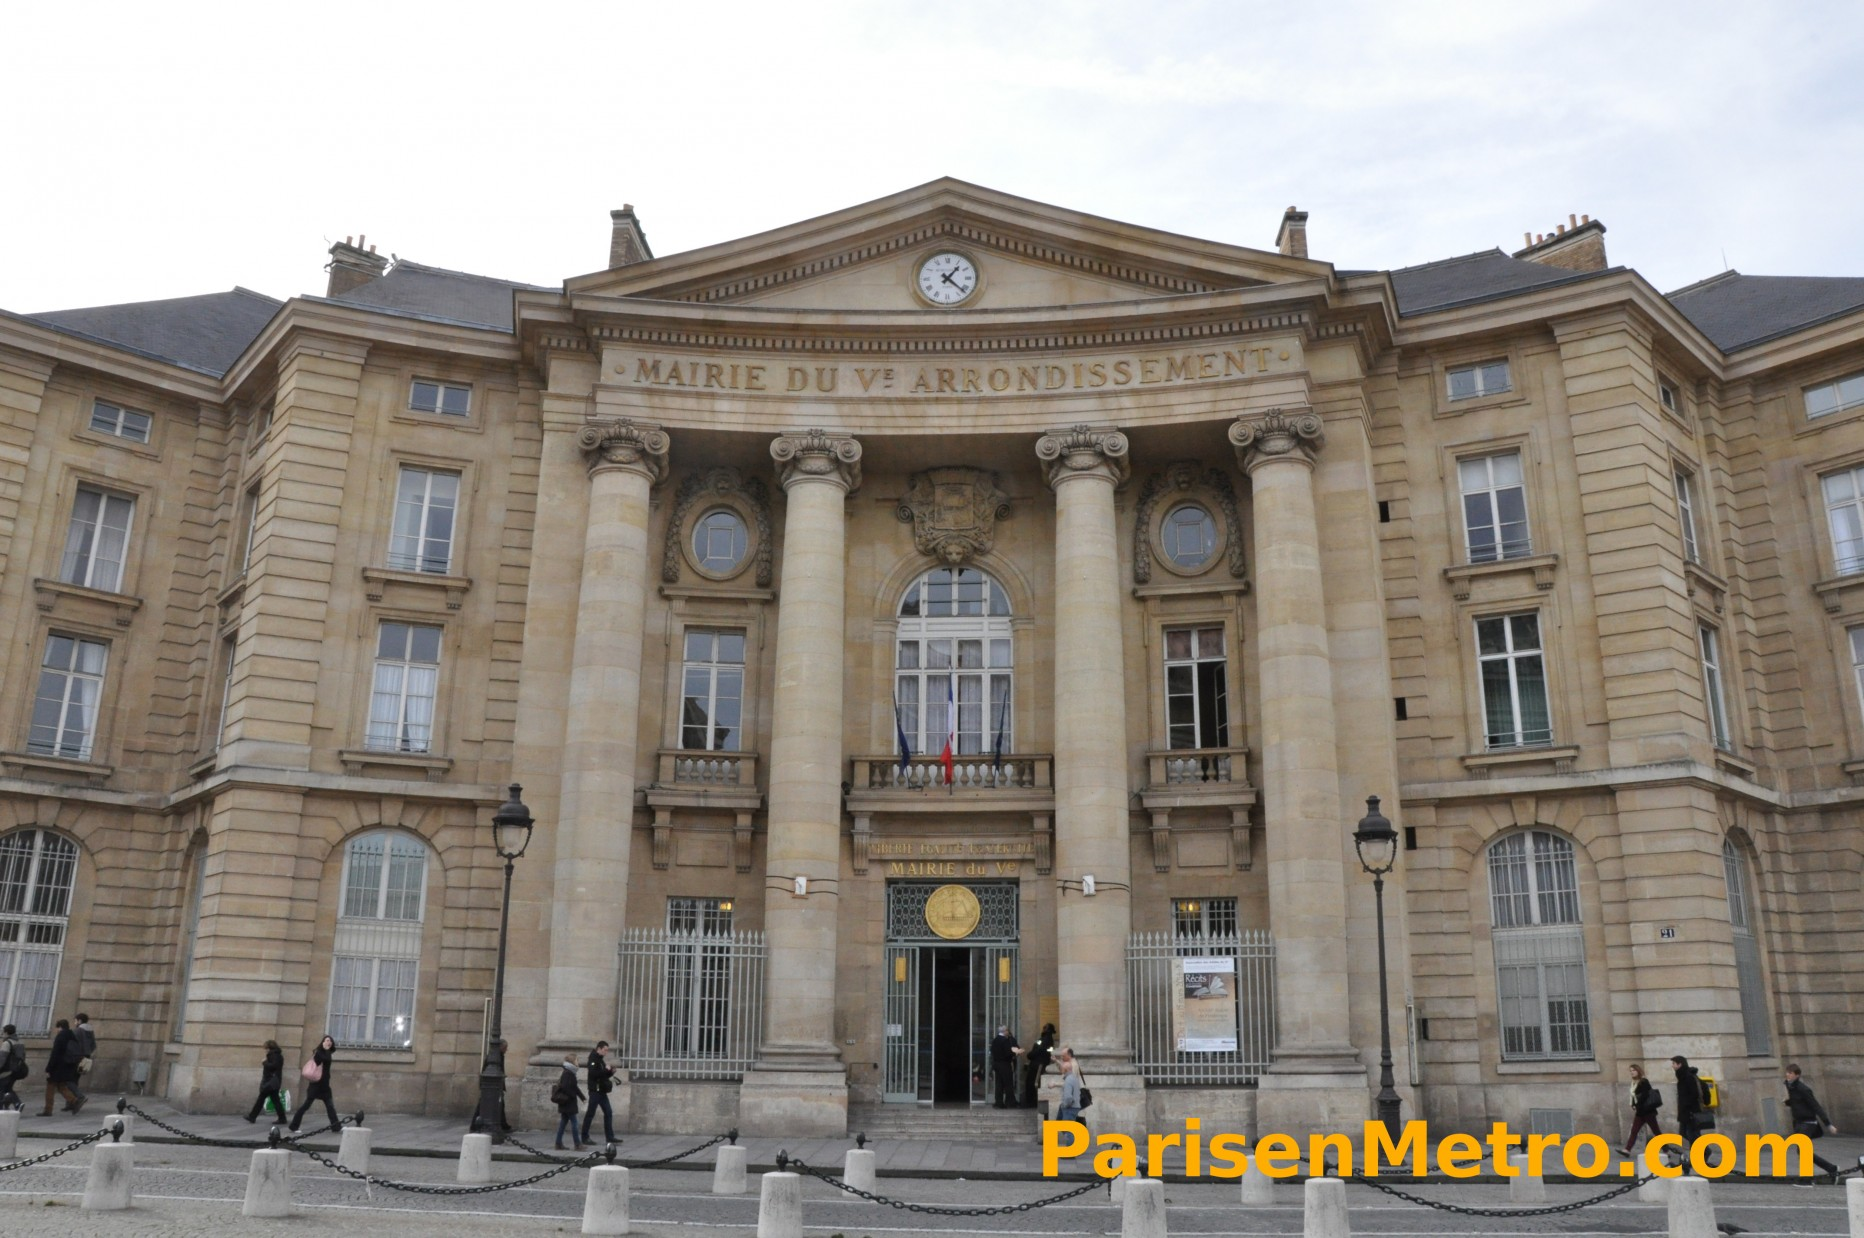 Mairie du 5 me arrondissement paris en m tro for Appart hotel 5eme arrondissement paris